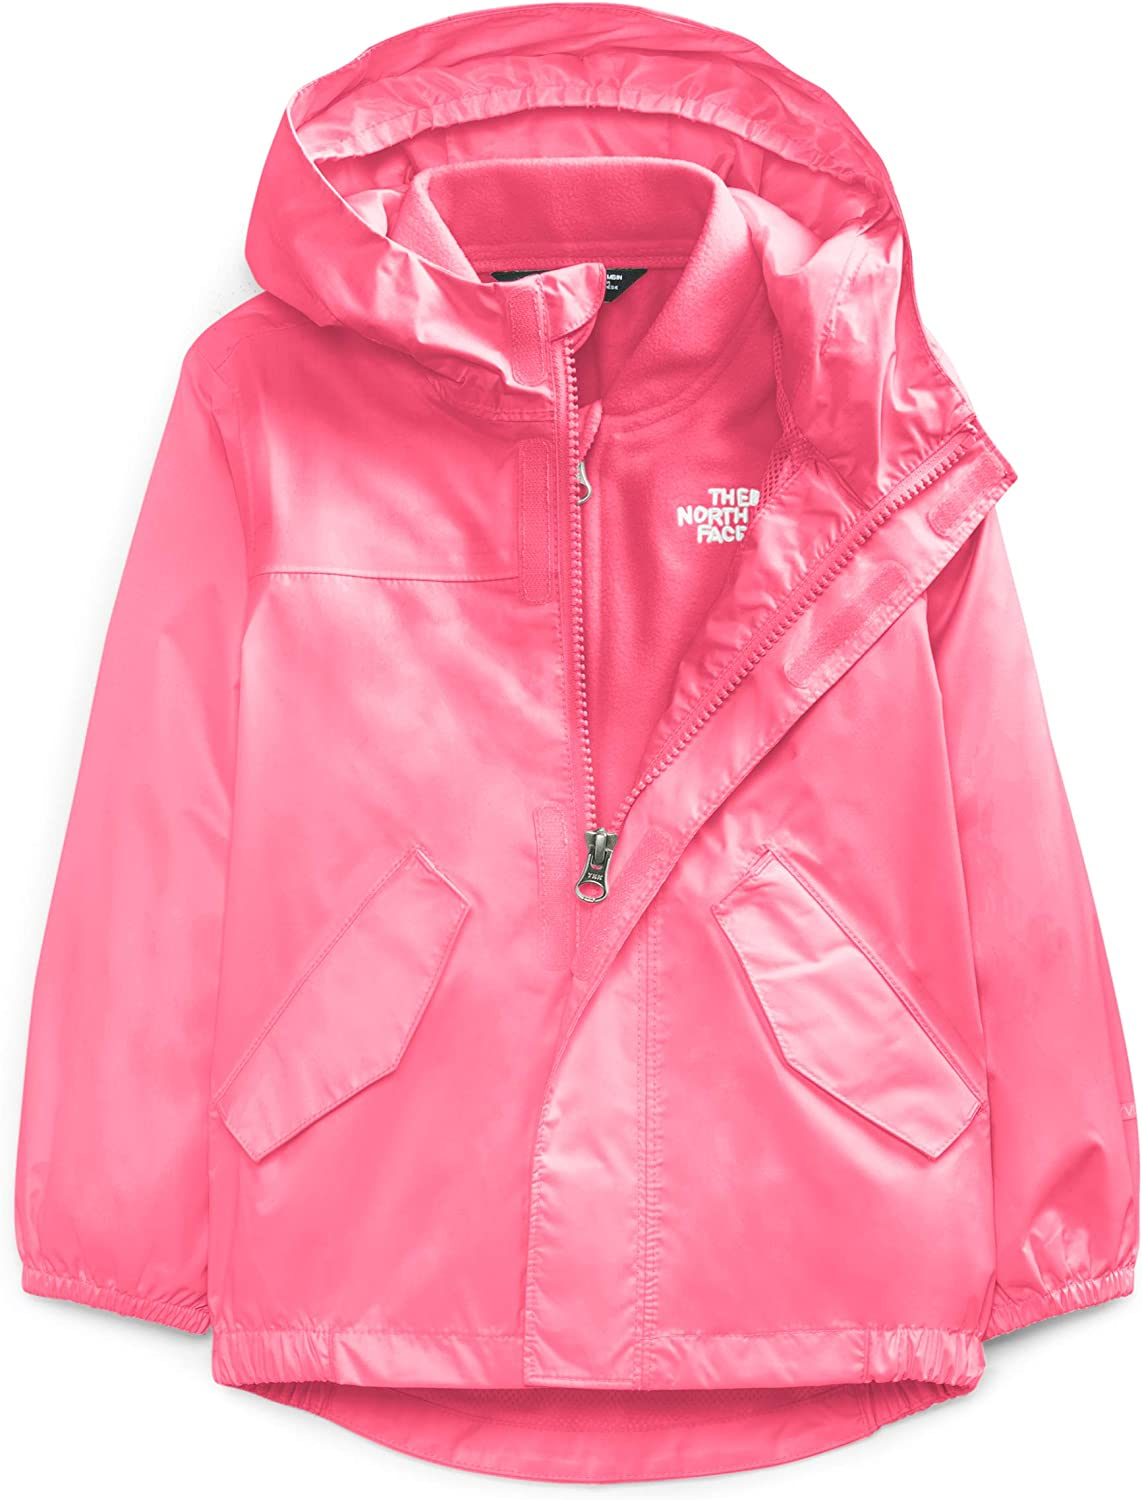 The North Face Toddler Stormy Rain Triclimate Jacket